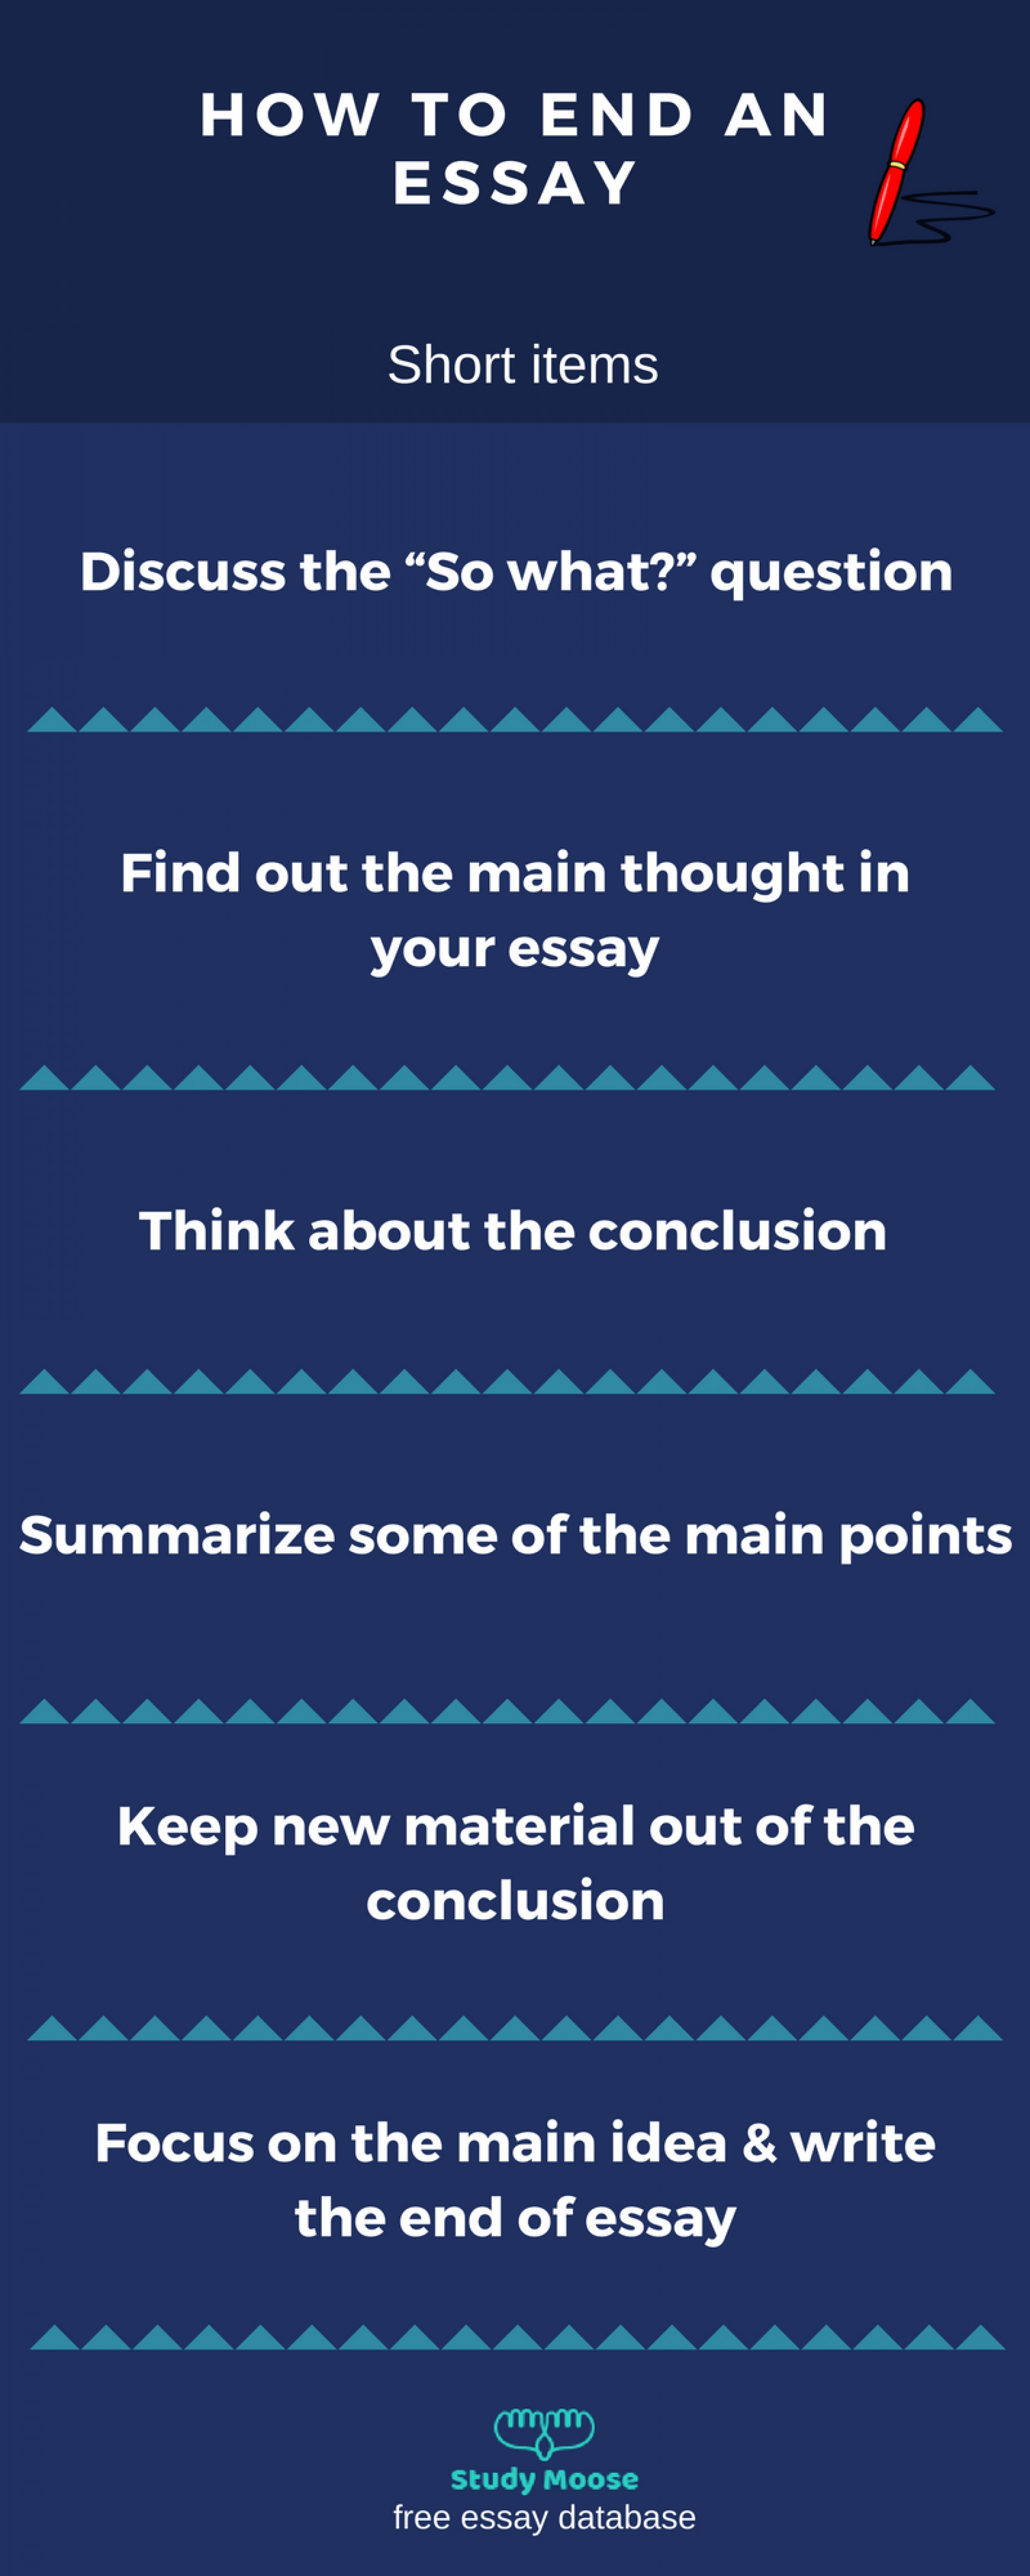 003 How To End An Essay Example Paragraph Outstanding A In Start Conclusion Persuasive Write Expository 1920